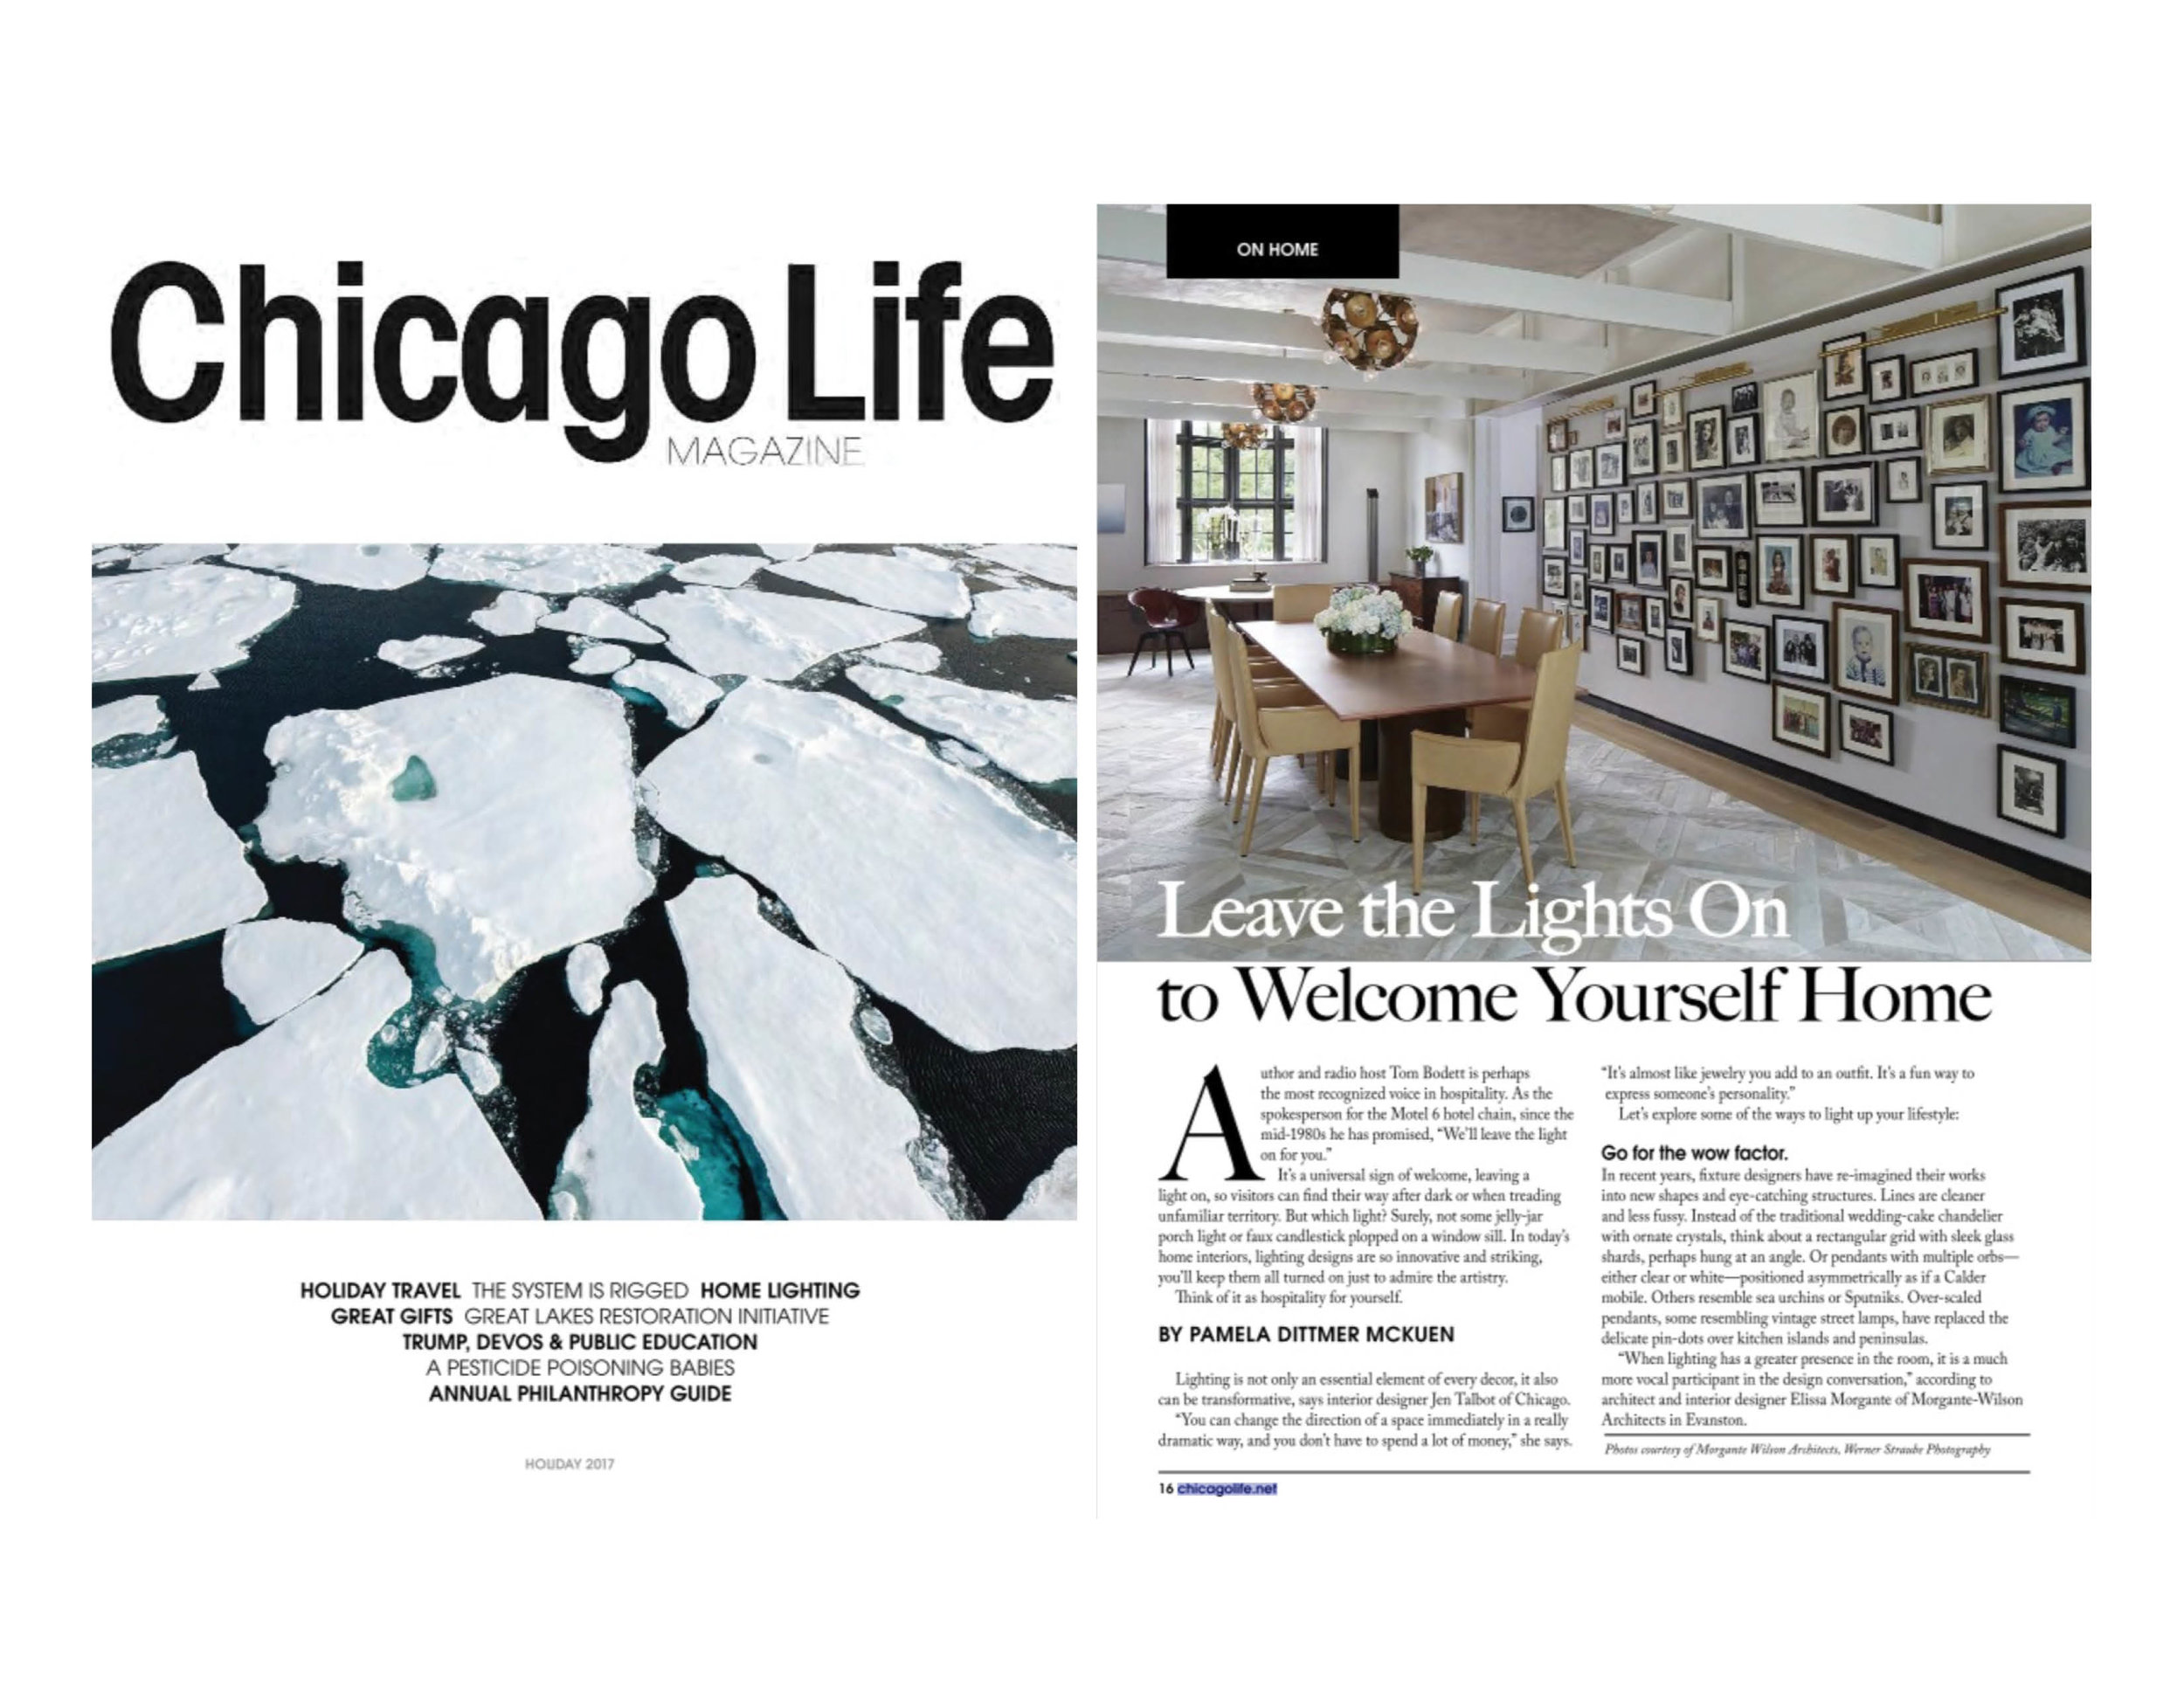 Chicago Life Article Image.jpg